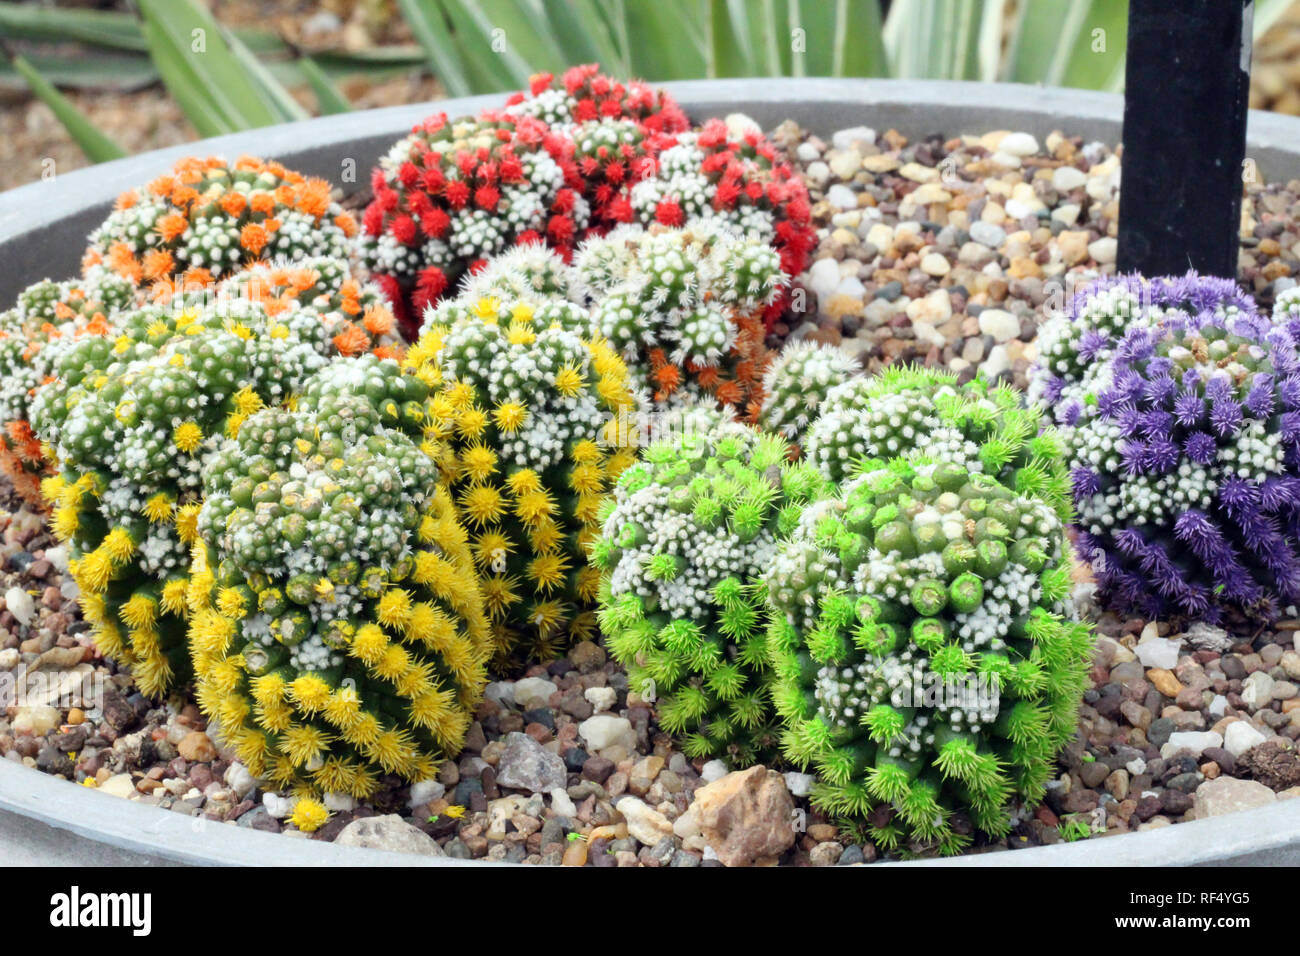 A group of multi colored Mammillaria cacti, dyed yellow, green, red, orange and purple - Stock Image